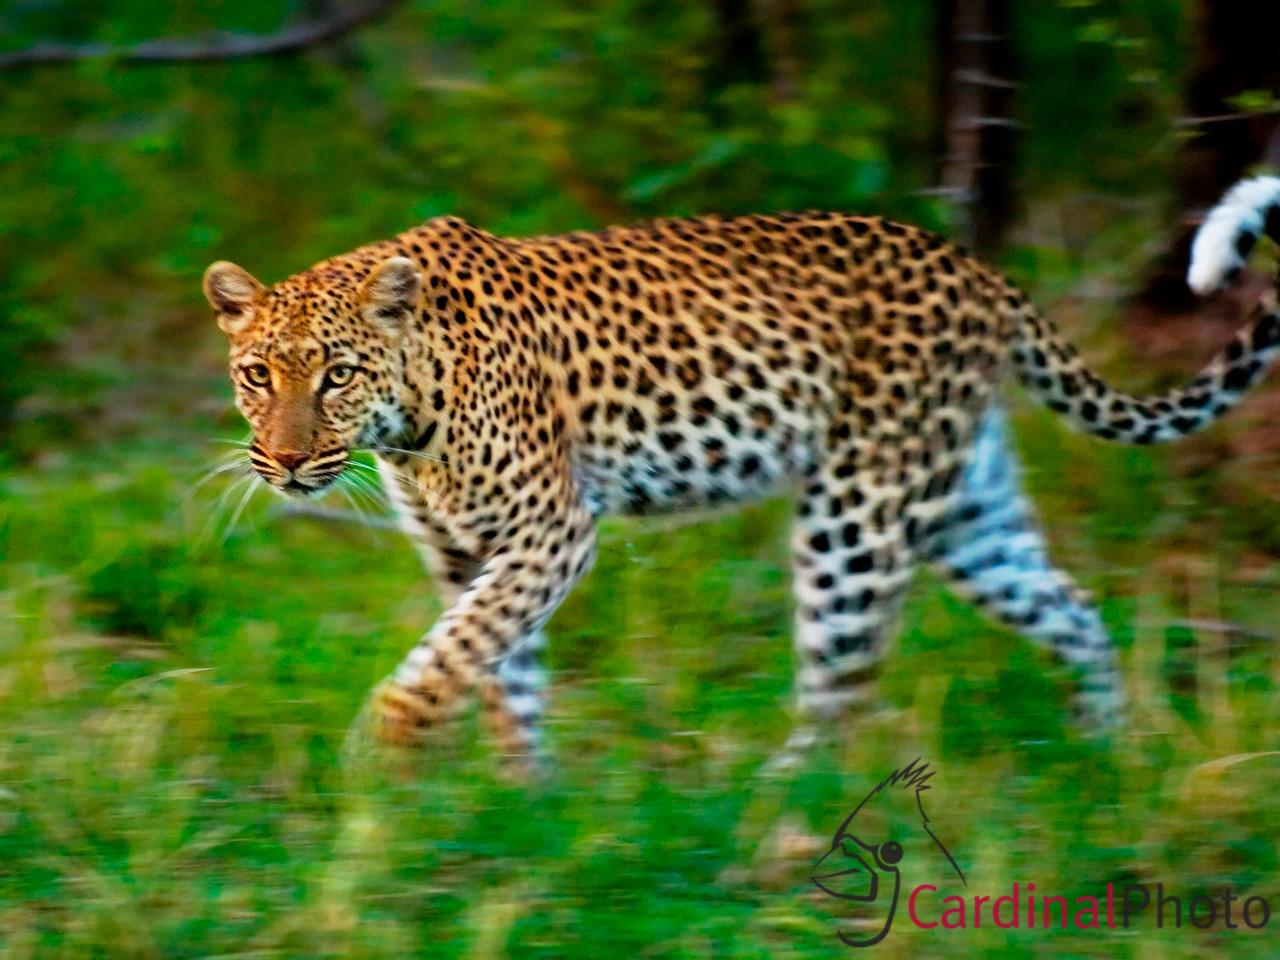 Vumbura Okavango Botswana 1/ 30s, at f/2.8 || E.Comp:0 || 200mm || WB: AUTO 0. || ISO: 800 || Tone: AUTO || Sharp: AUTO || Camera: NIKON D2Hon: 2003:01:26 18:09:23